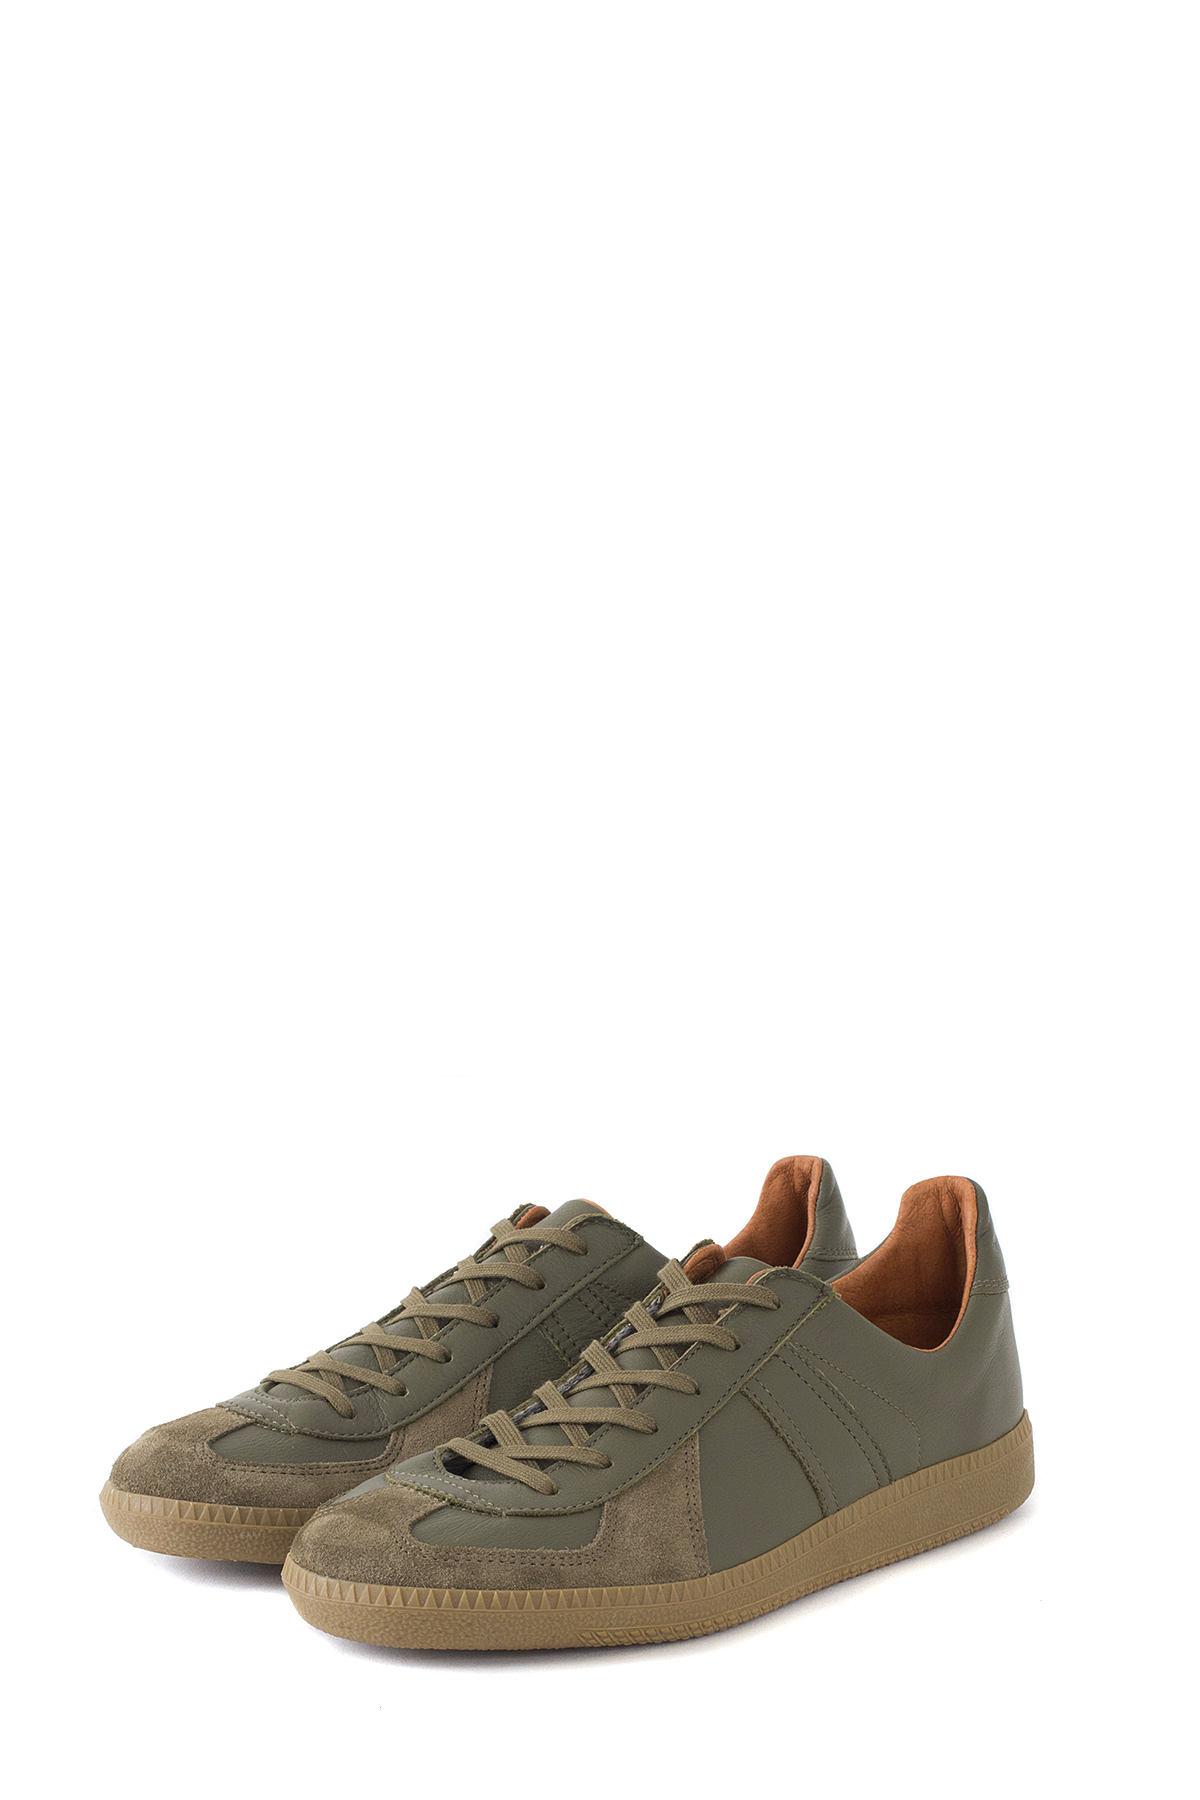 REPRODUCTION OF FOUND : German Military Trainer (Olive)